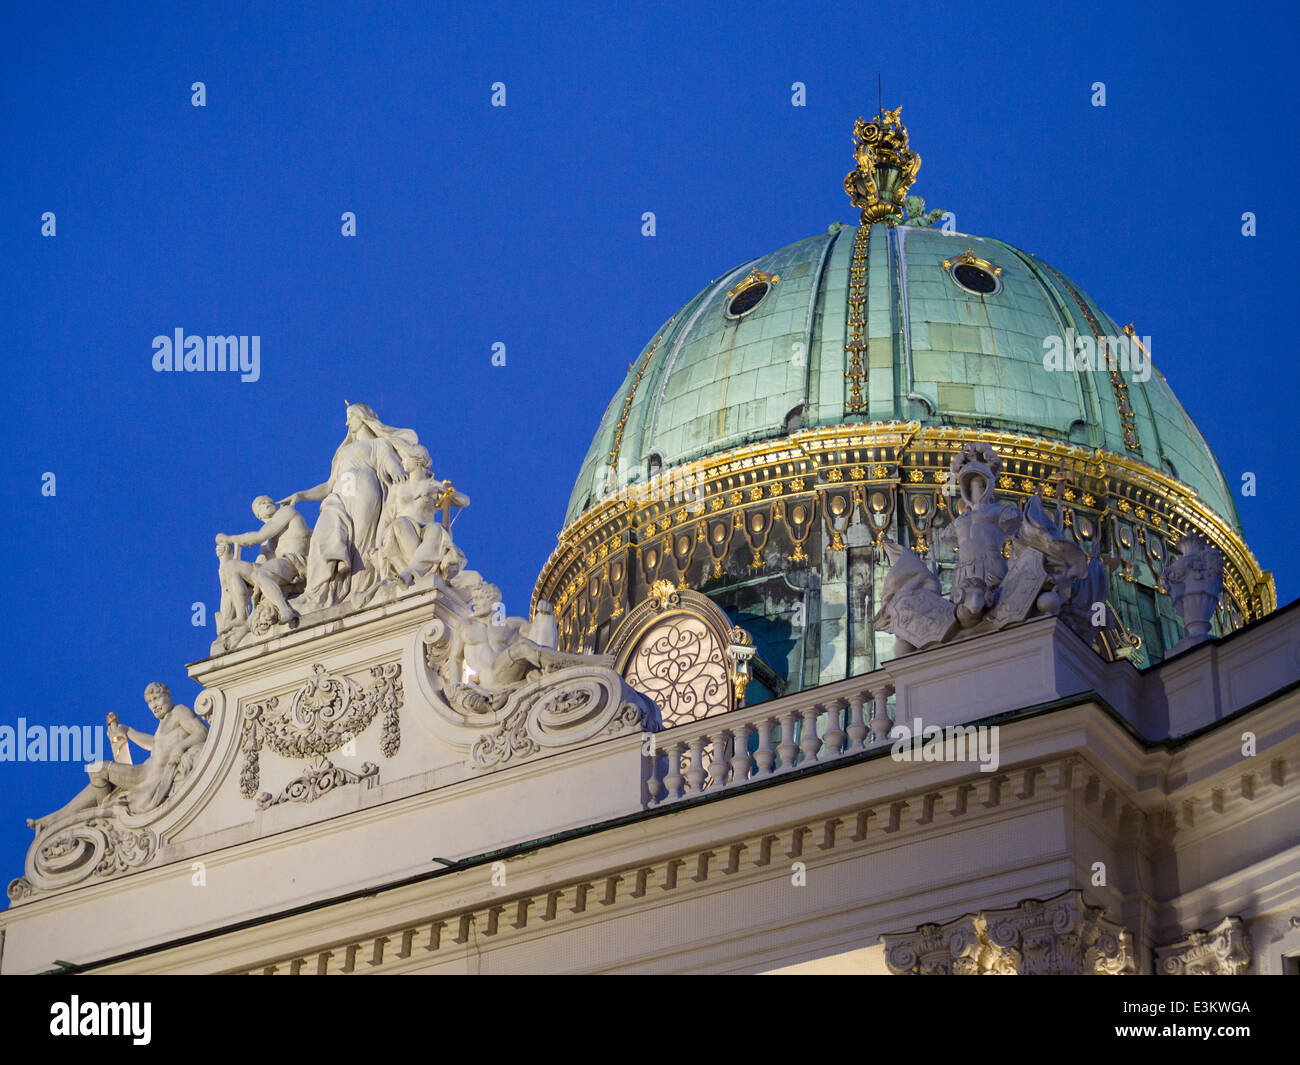 Gilded Copper dome over the Hofburg Palace. Floodlit dome at one of the entrances to the huge palace complex. - Stock Image